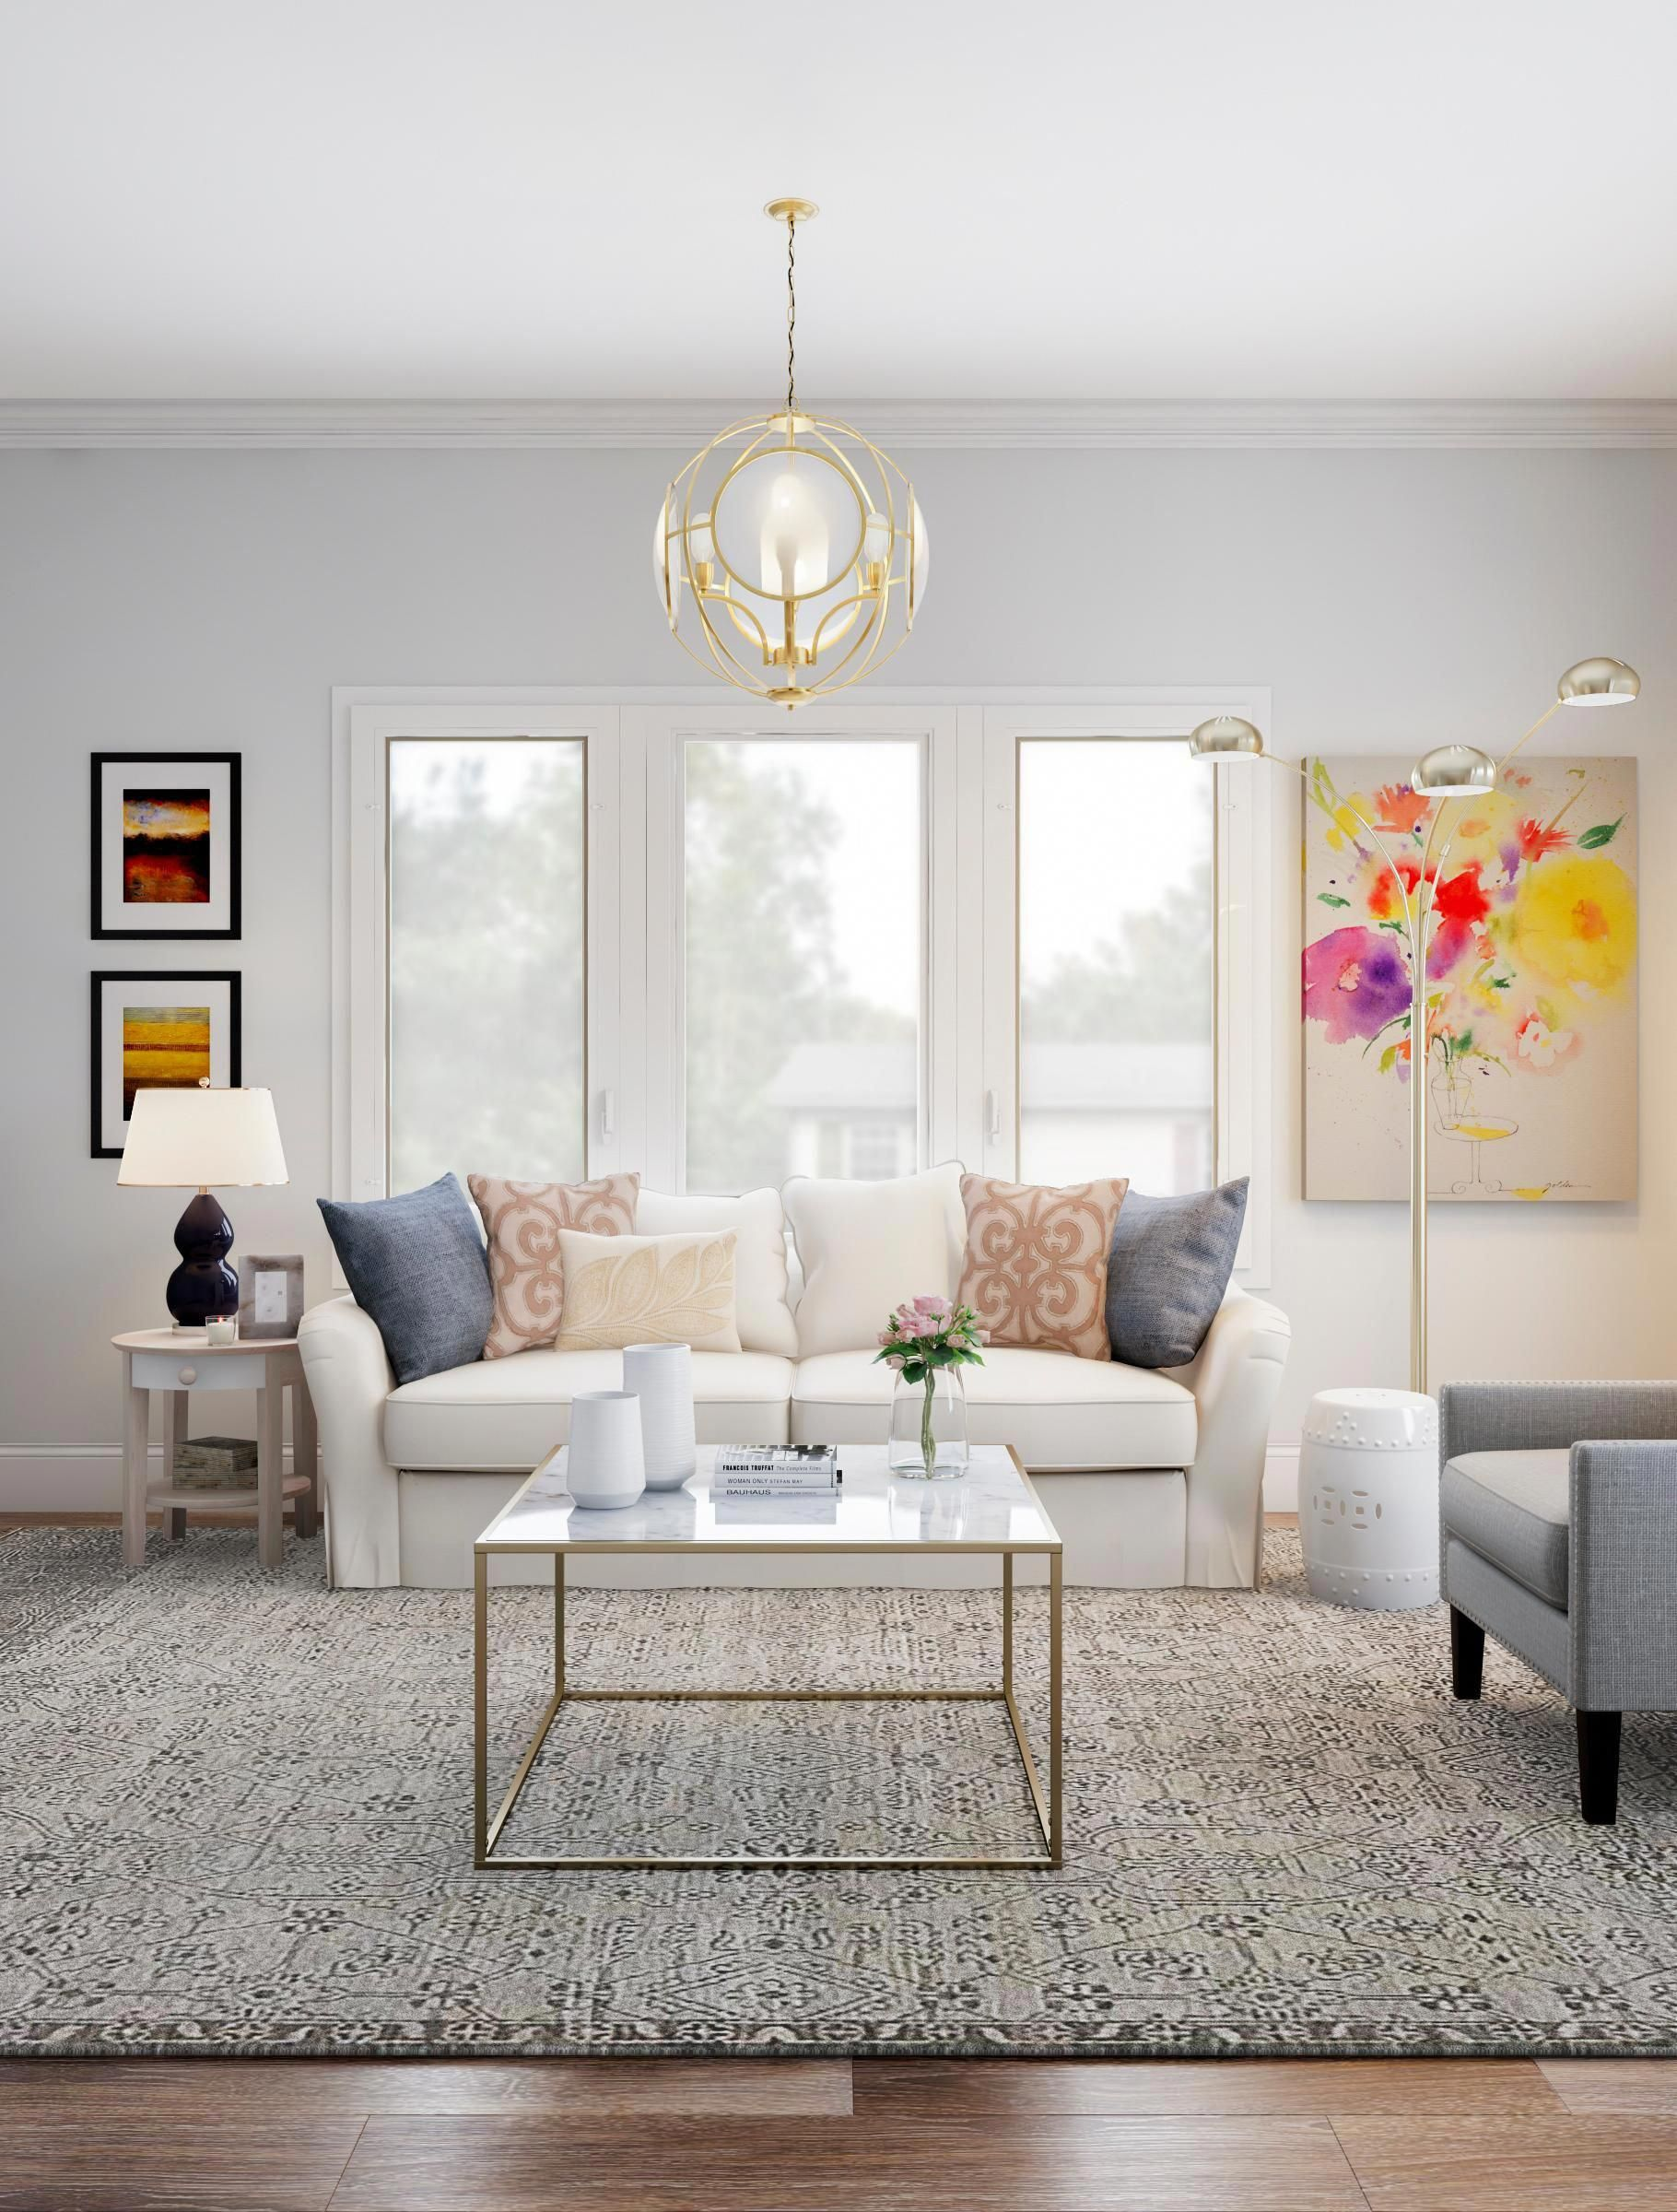 Build Your Living Room Around Your Art Collection It S What The Great Collectors Do Here We Use Bi Living Room Designs Elegant Living Room Decor Room Decor Around my living room